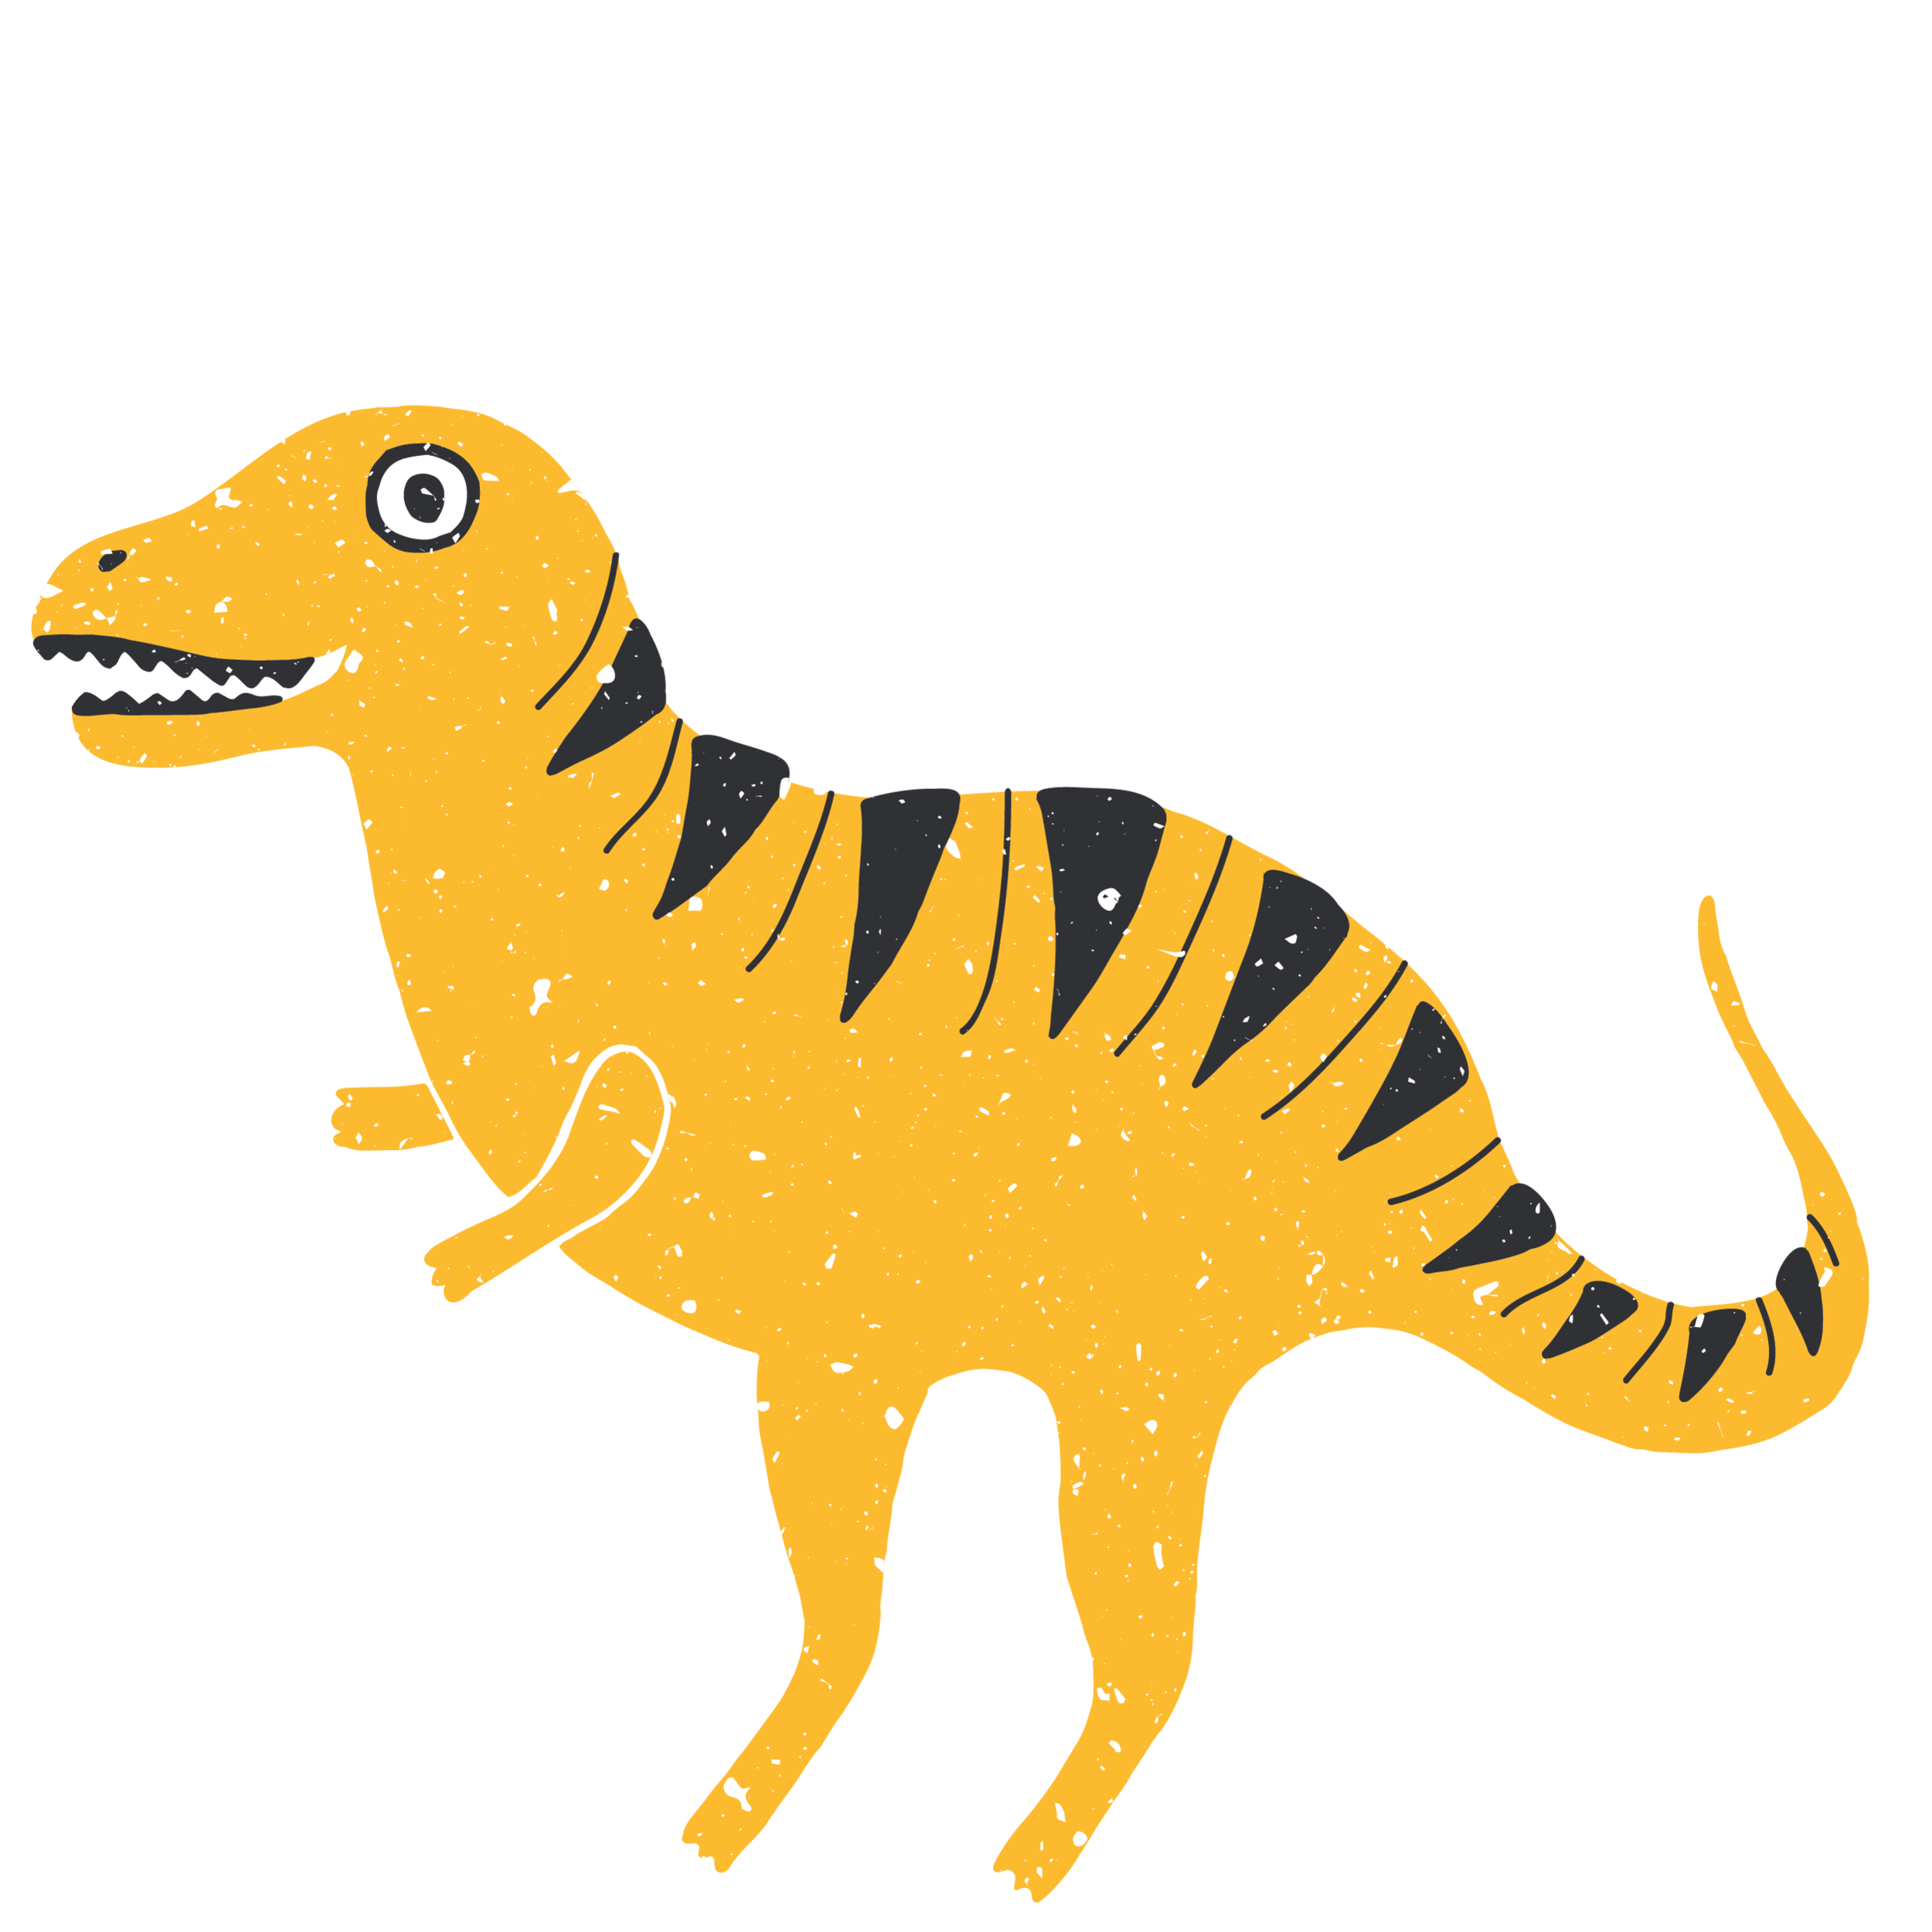 LE-Services-Dino-04.png